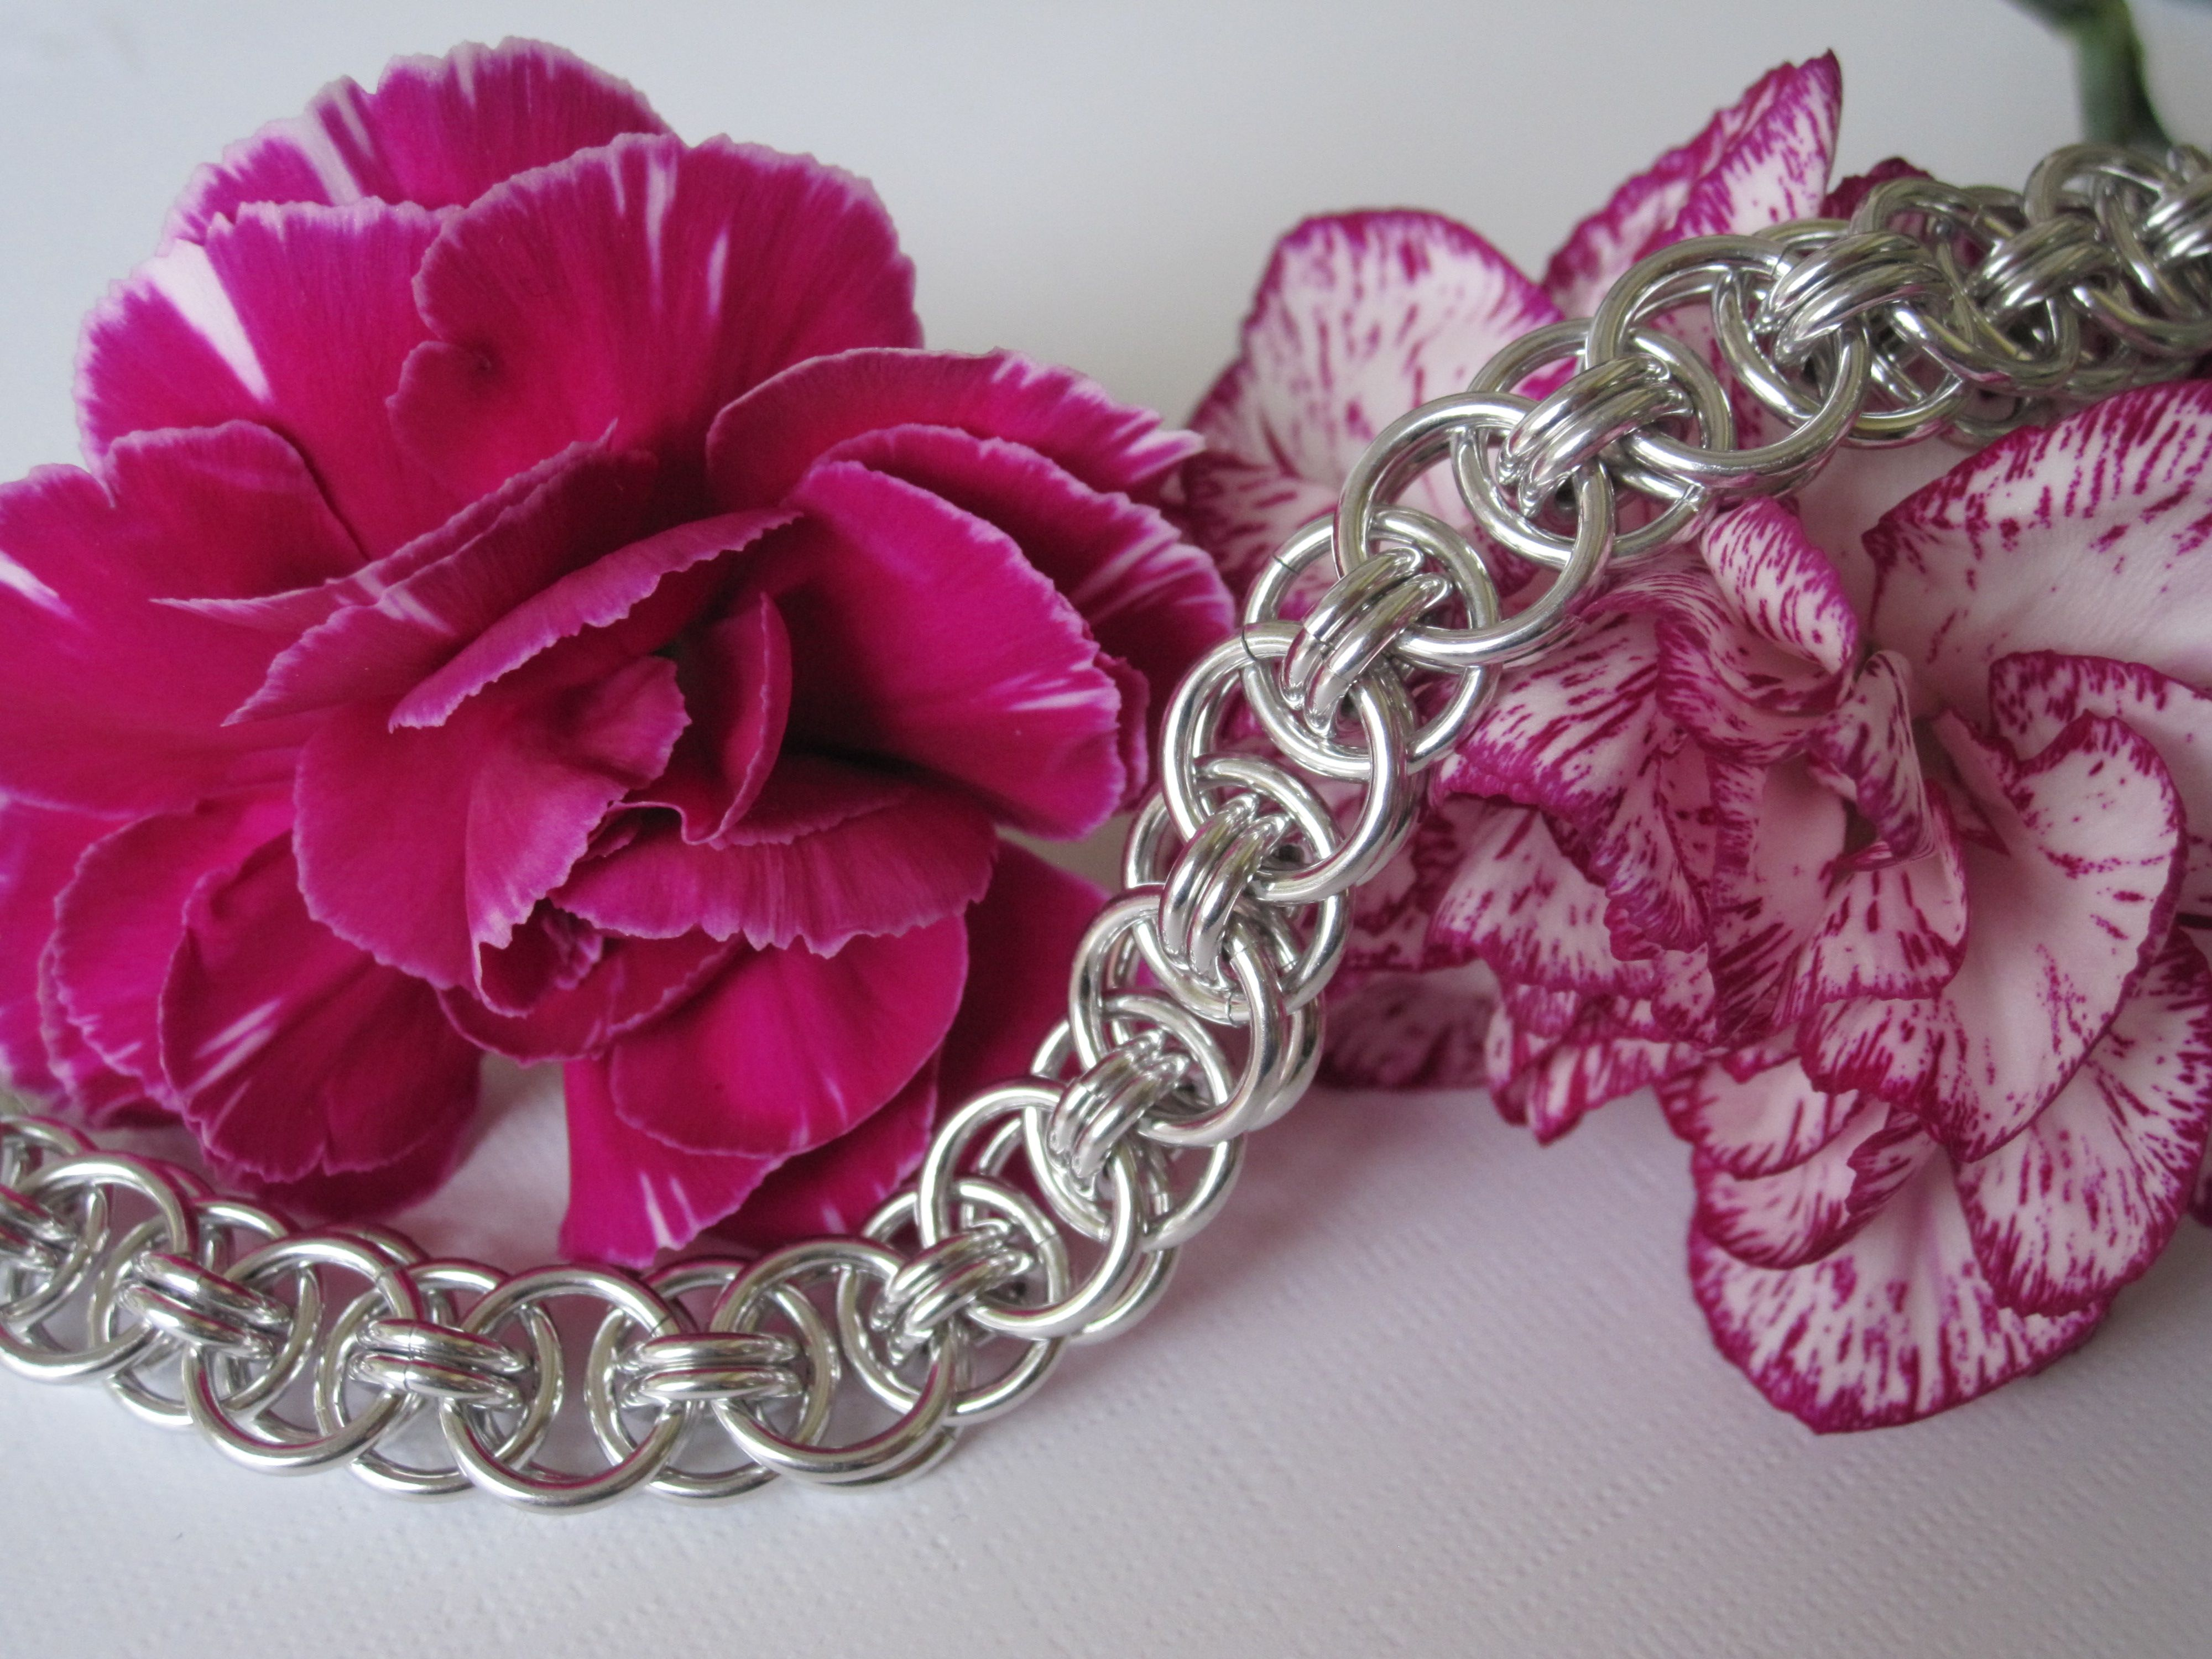 I love this weave; have made a bracelet using gold rings as well as silver.  Feels very silky.